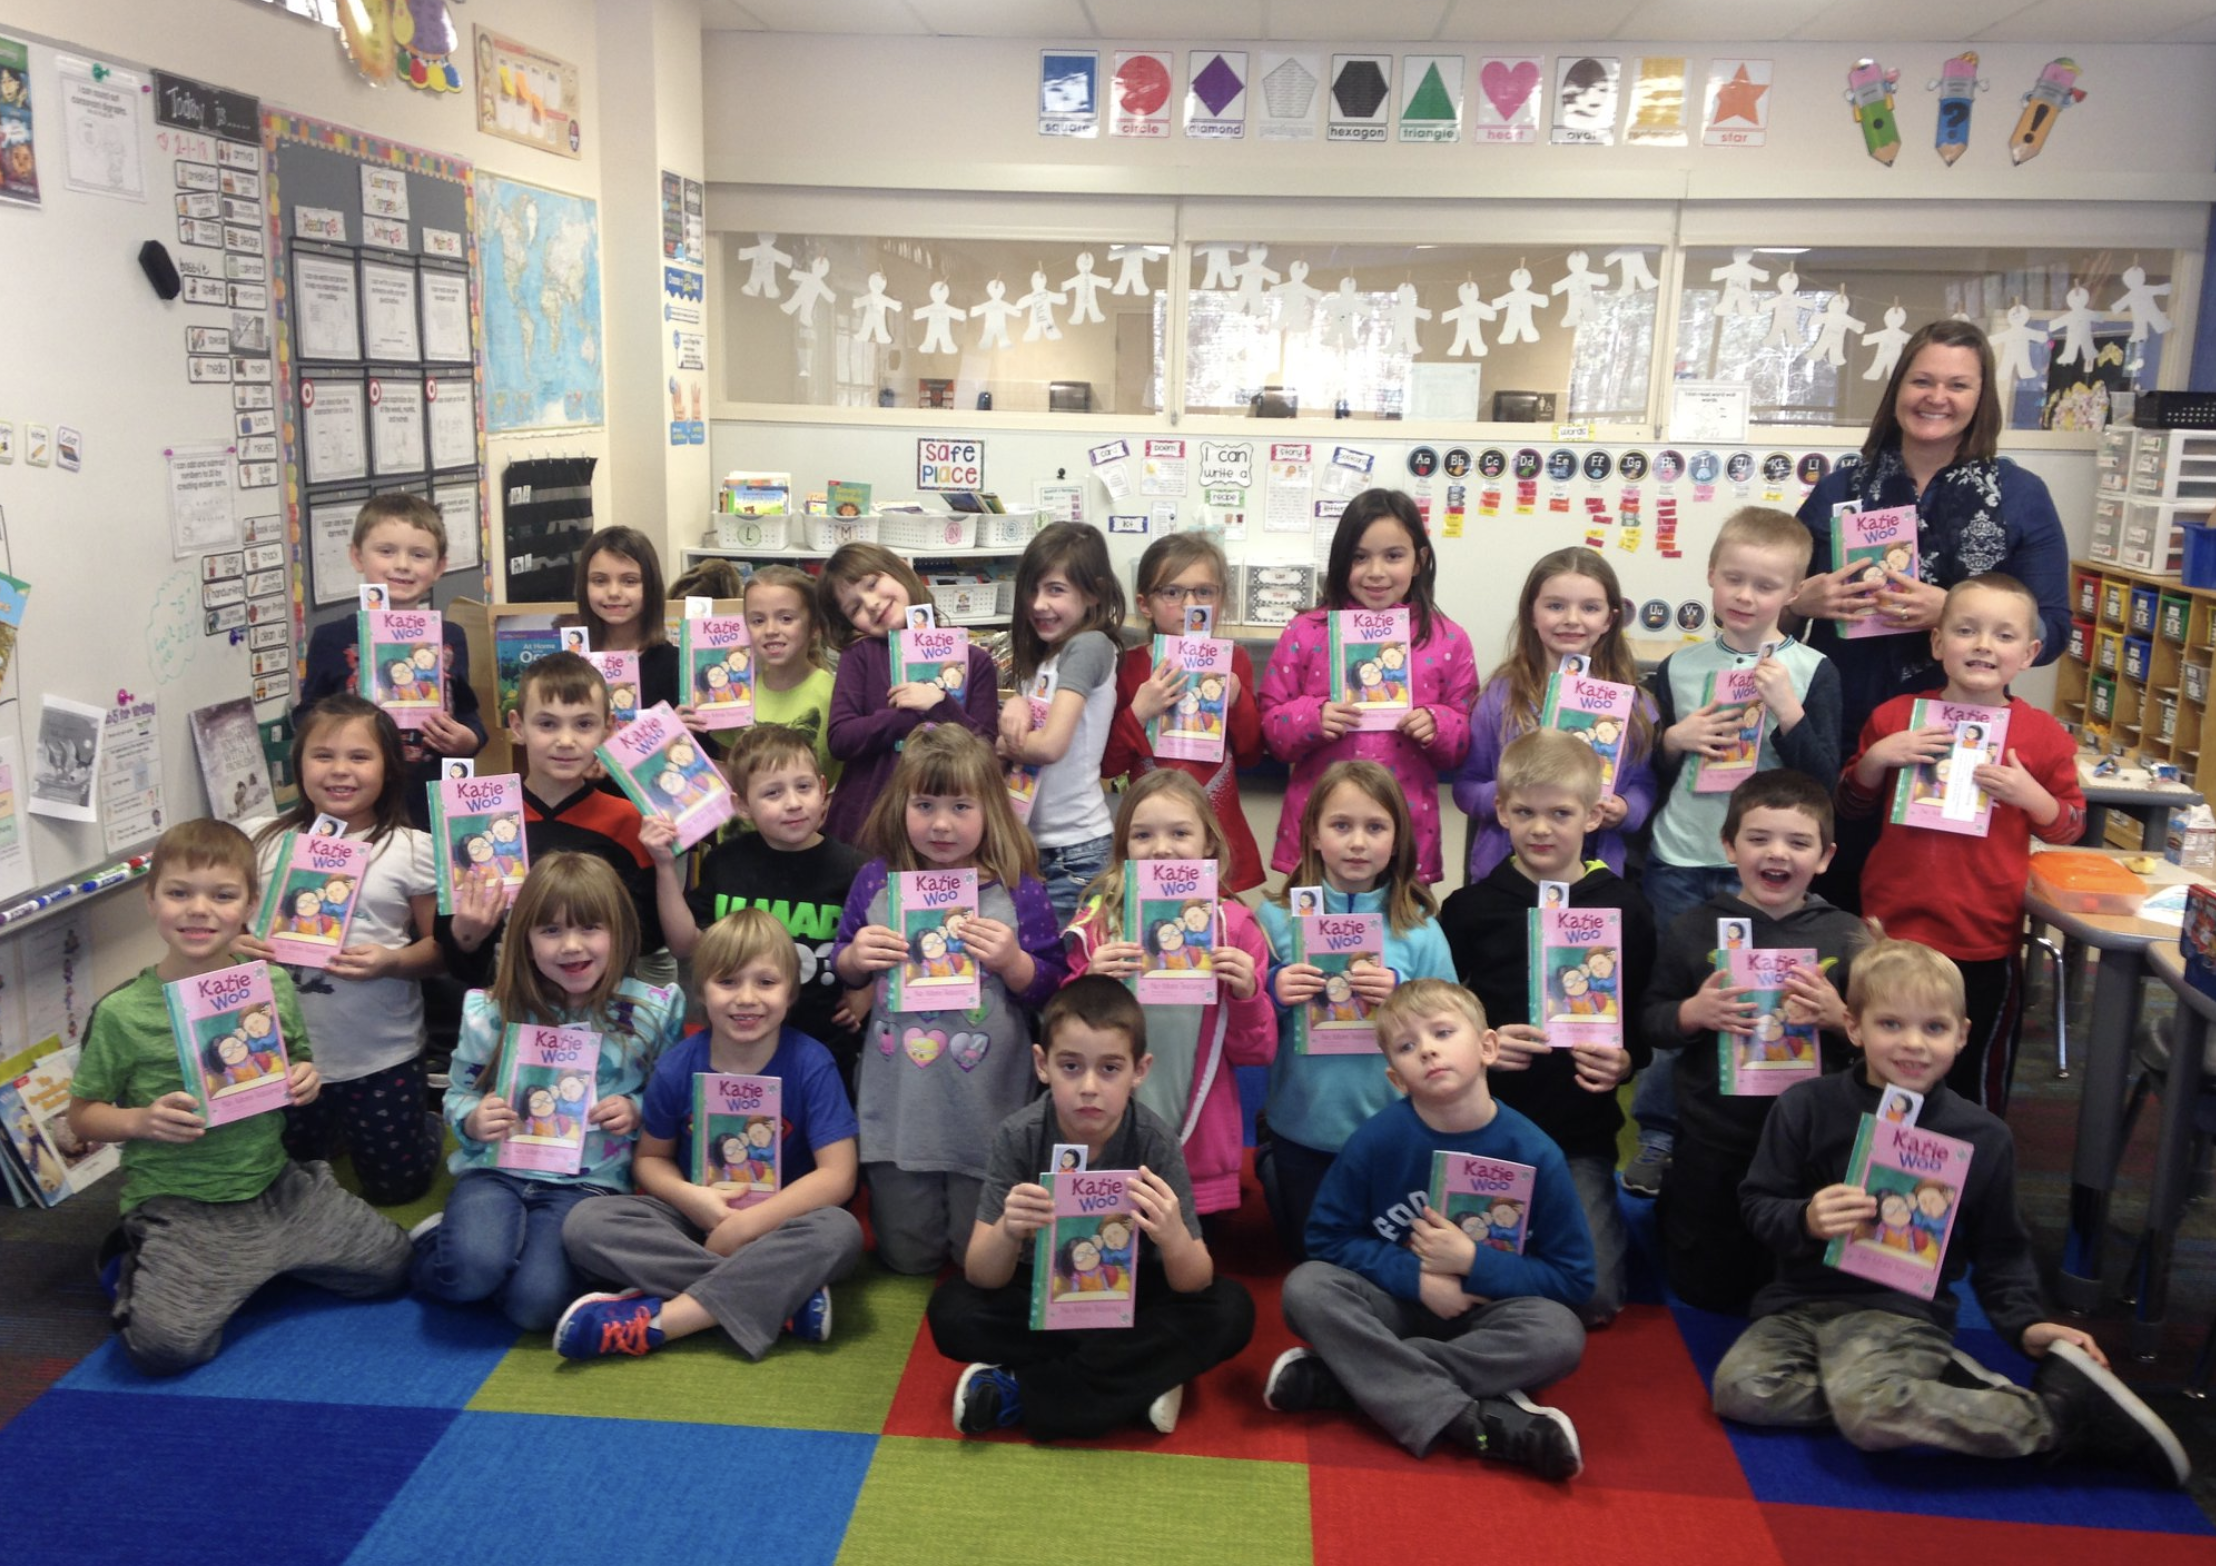 Primary School students with their copies of Katie Woo